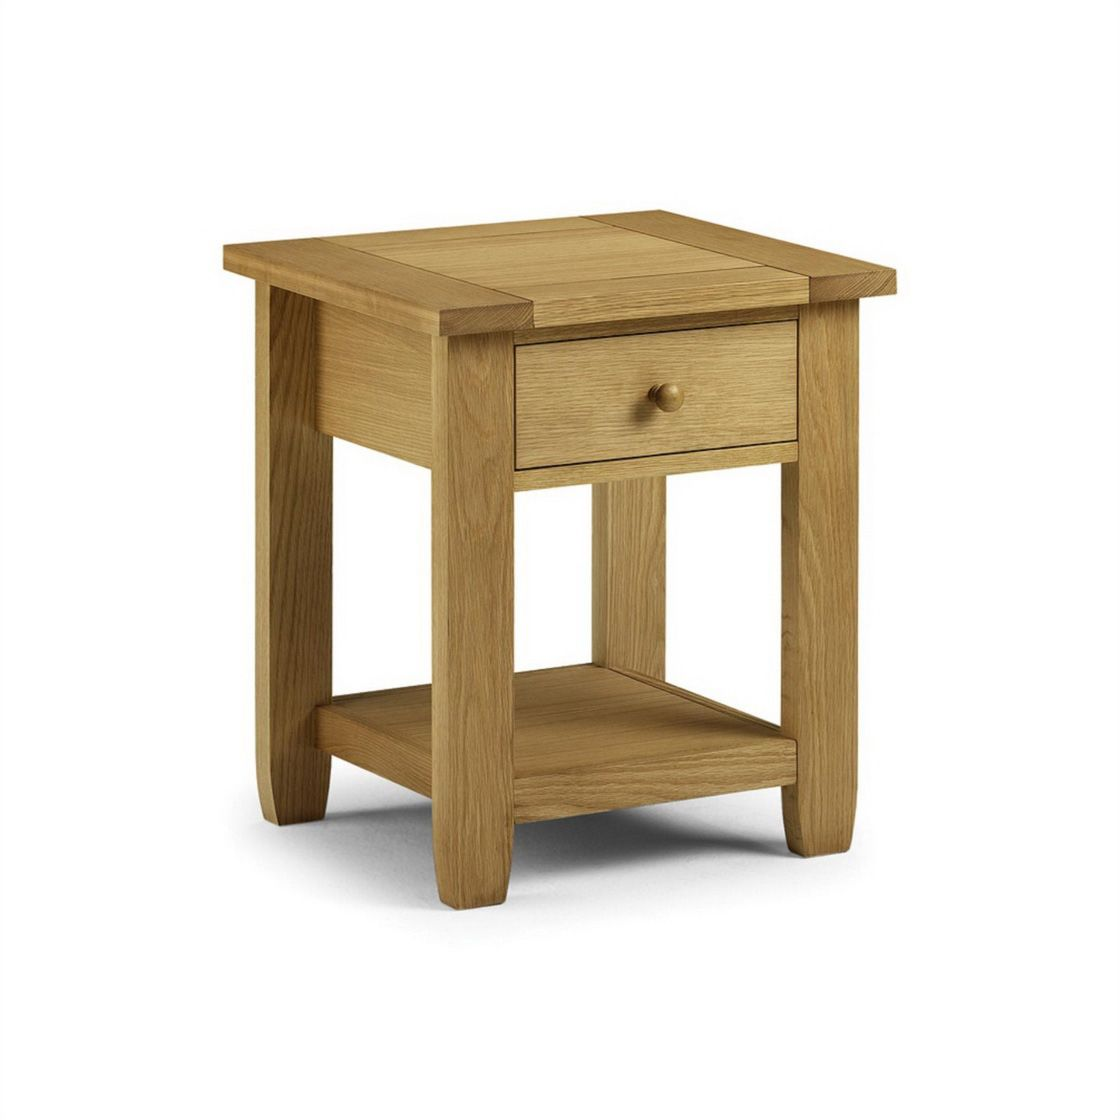 Bedroom Side Table Plans